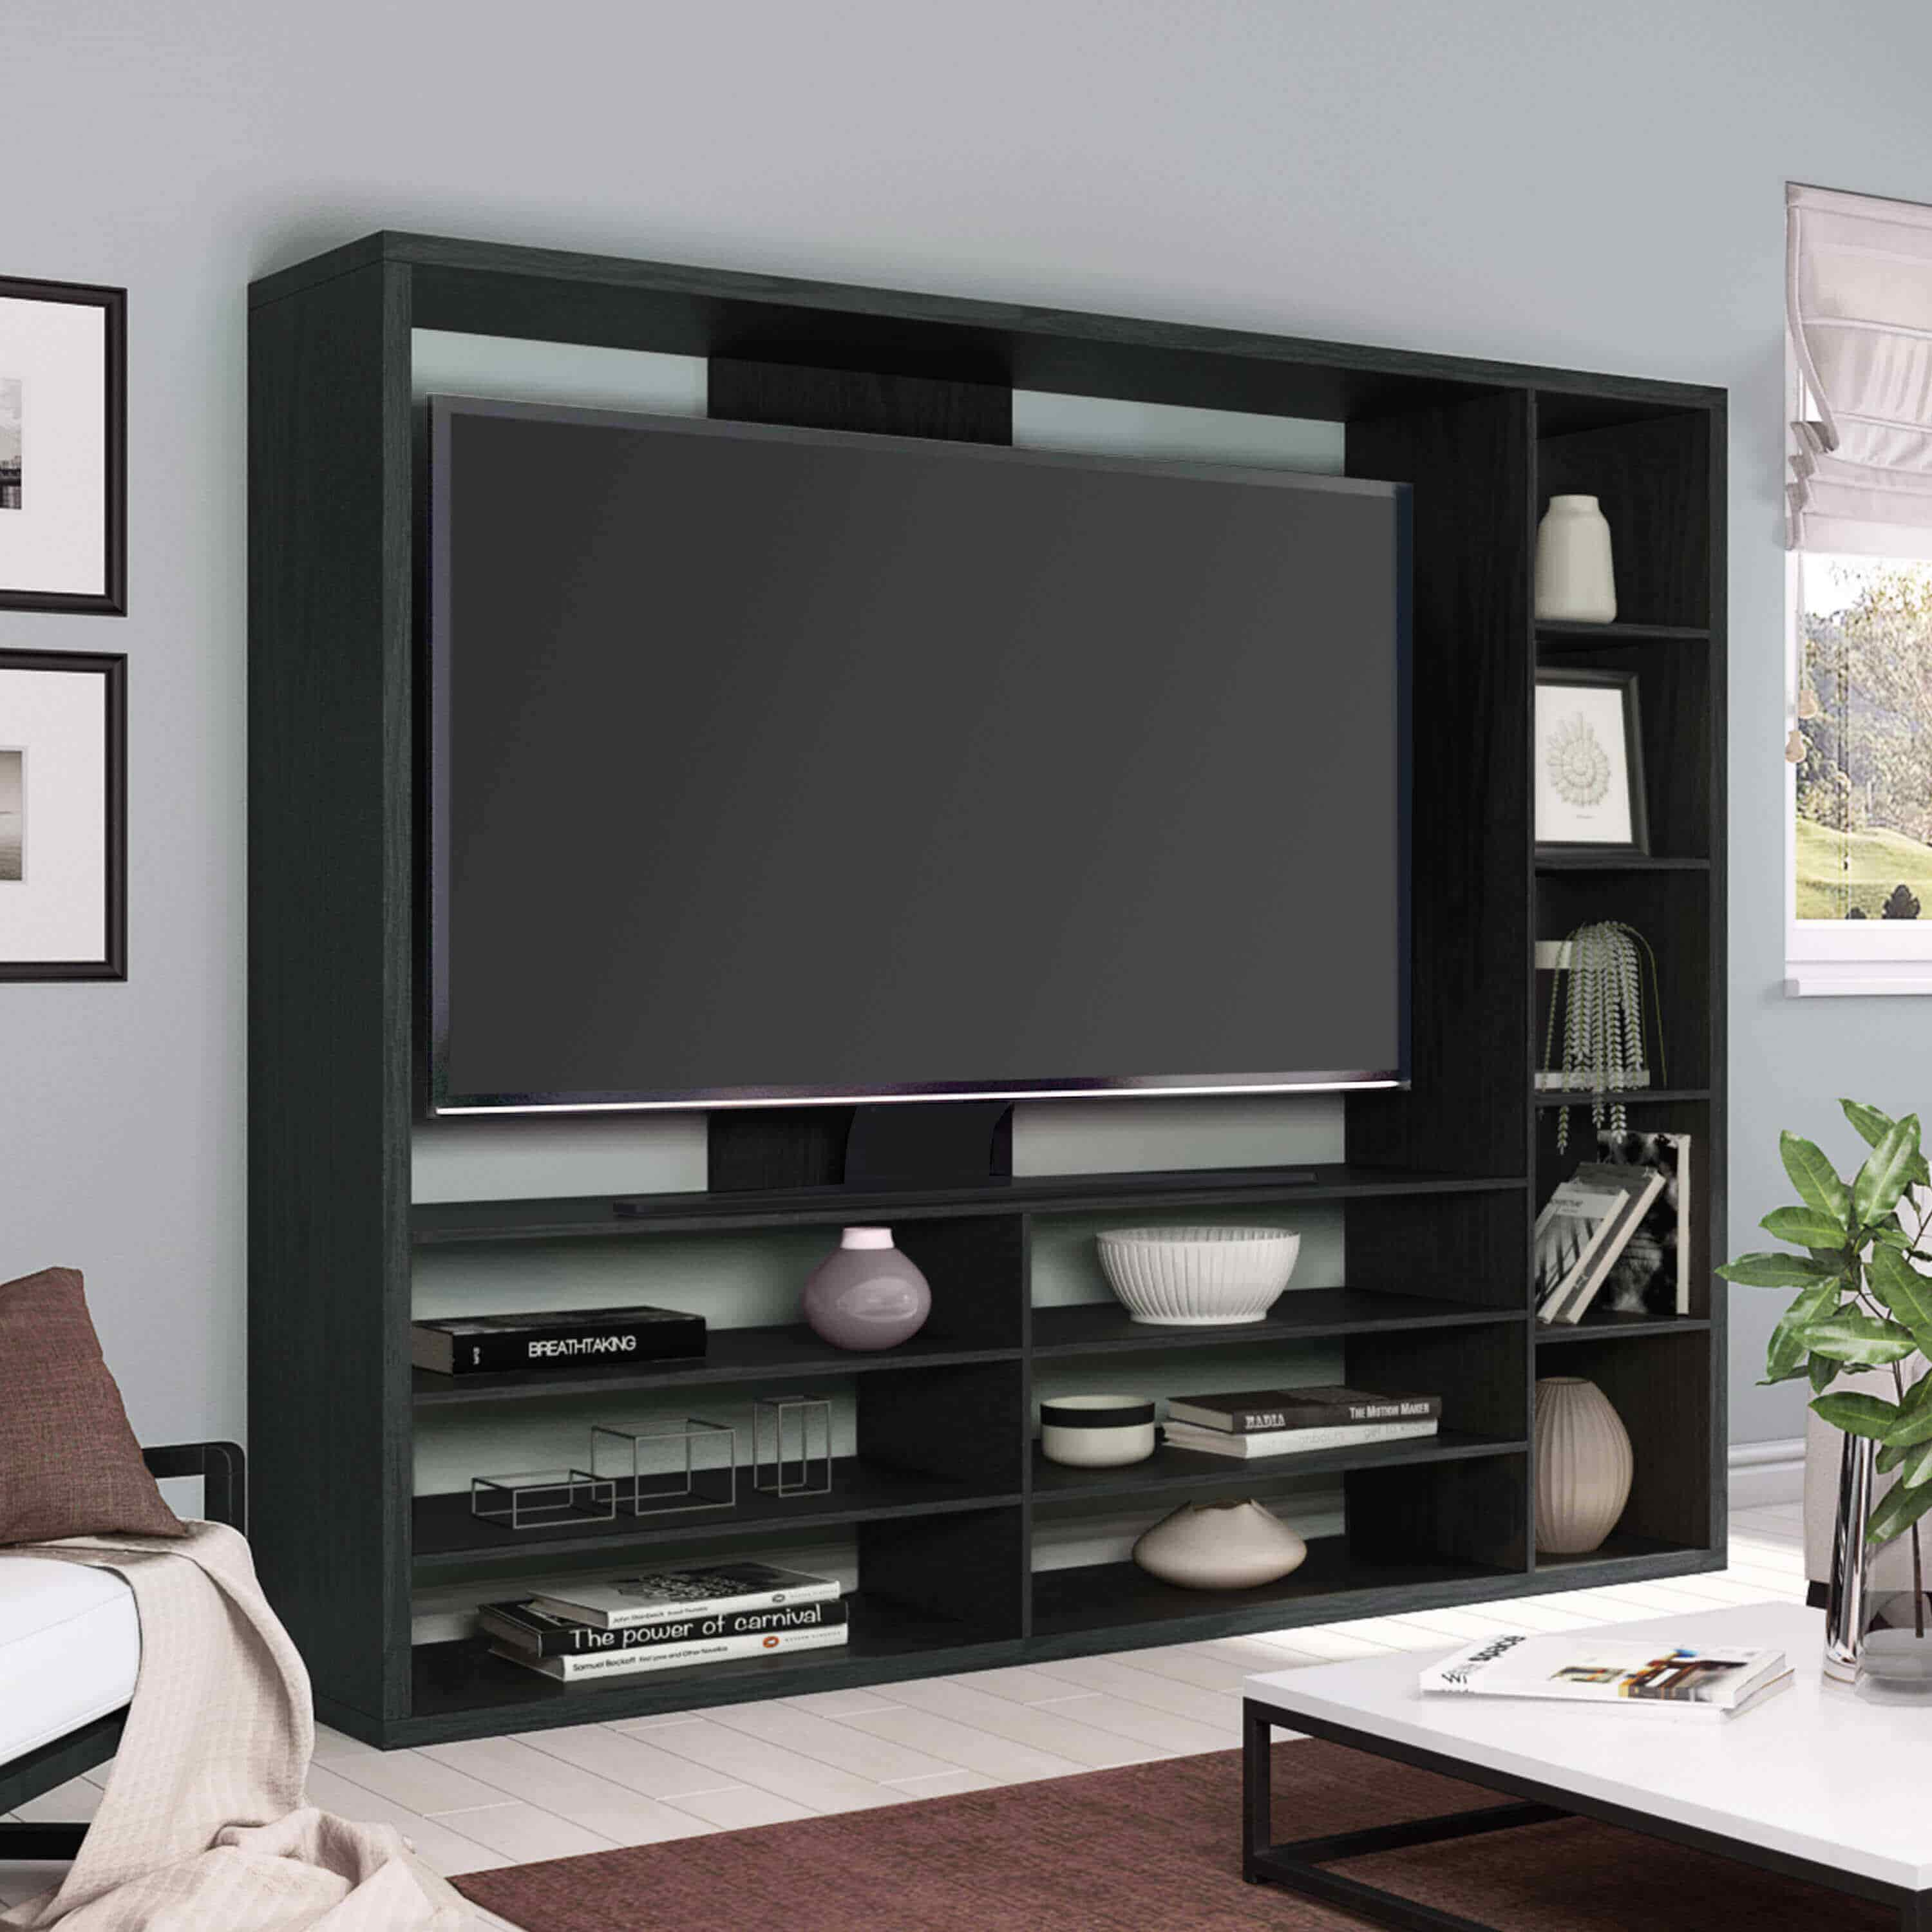 Most Beautiful And Incredible Tv Stand Design Ideas